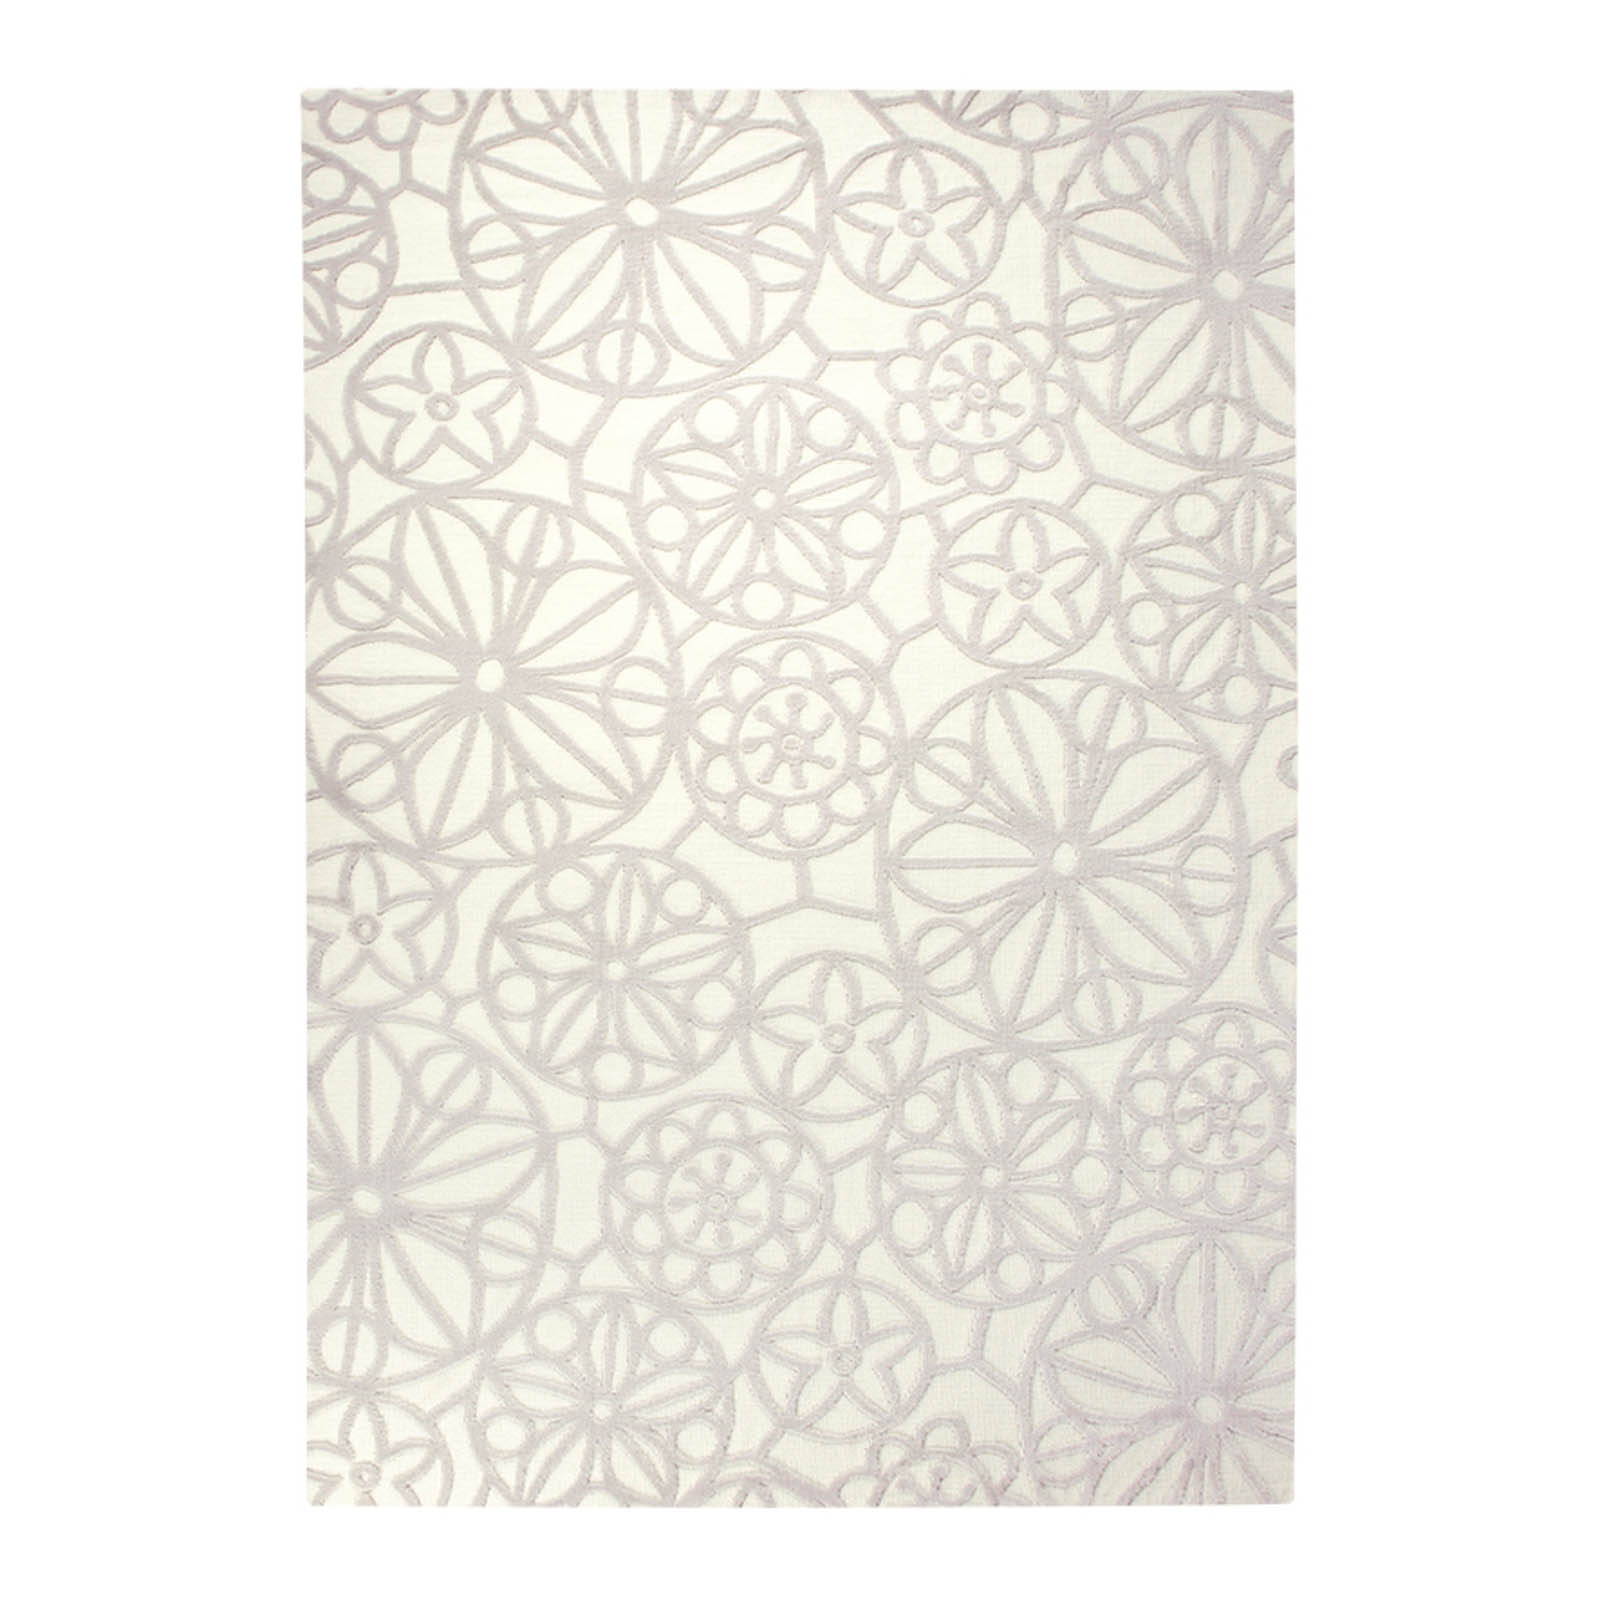 Esprit Society Circle Rugs 6100 06 Beige